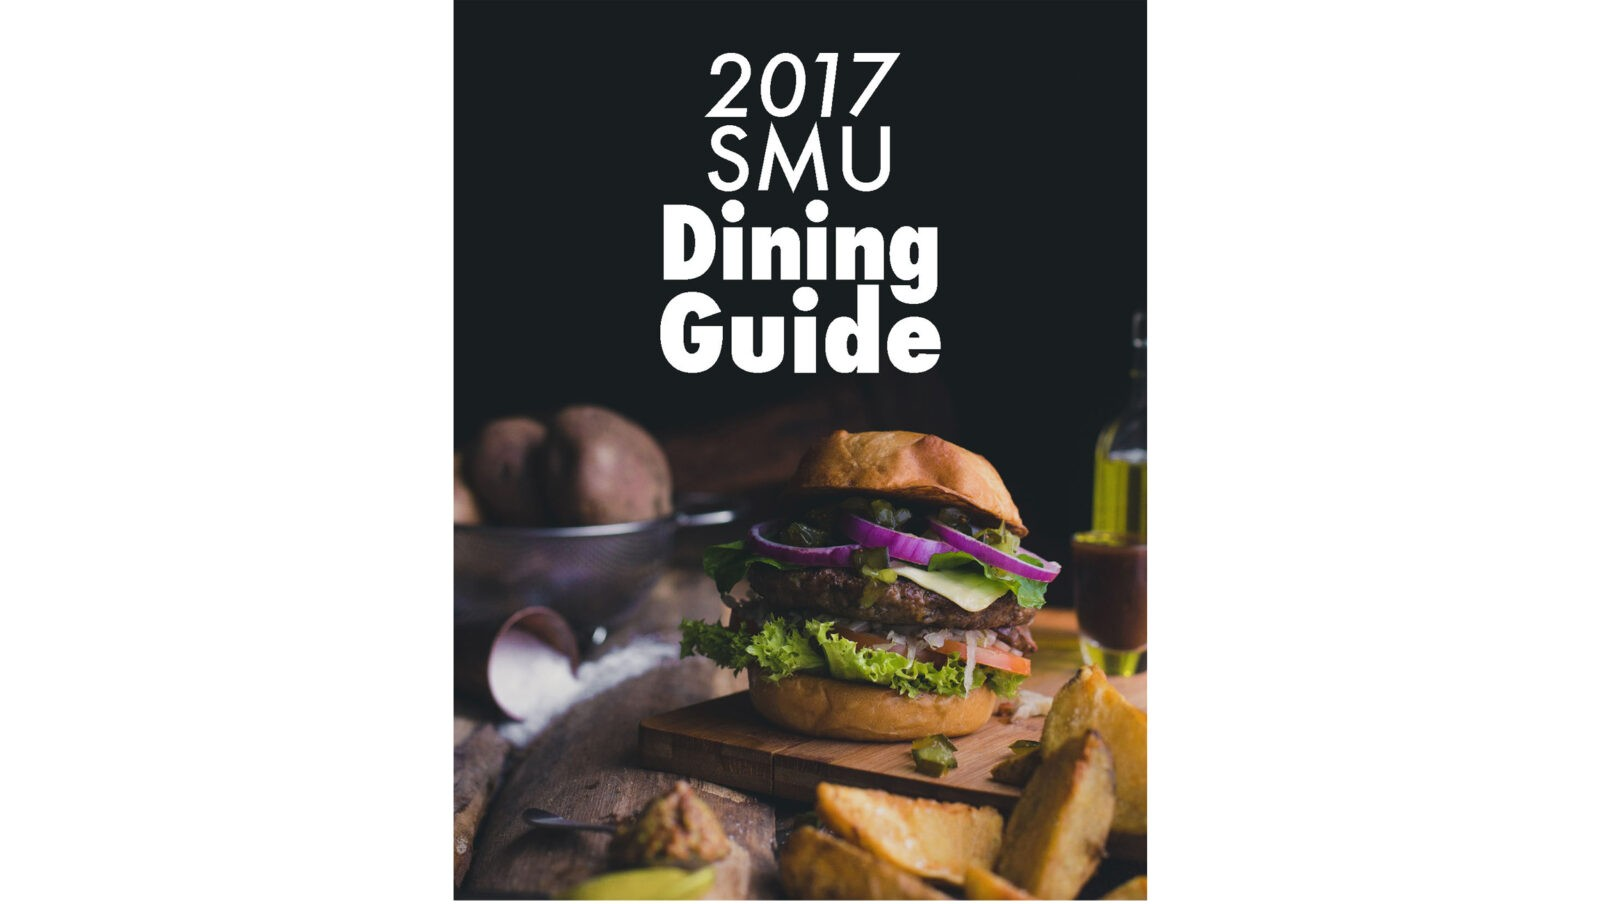 Dining Guide cover